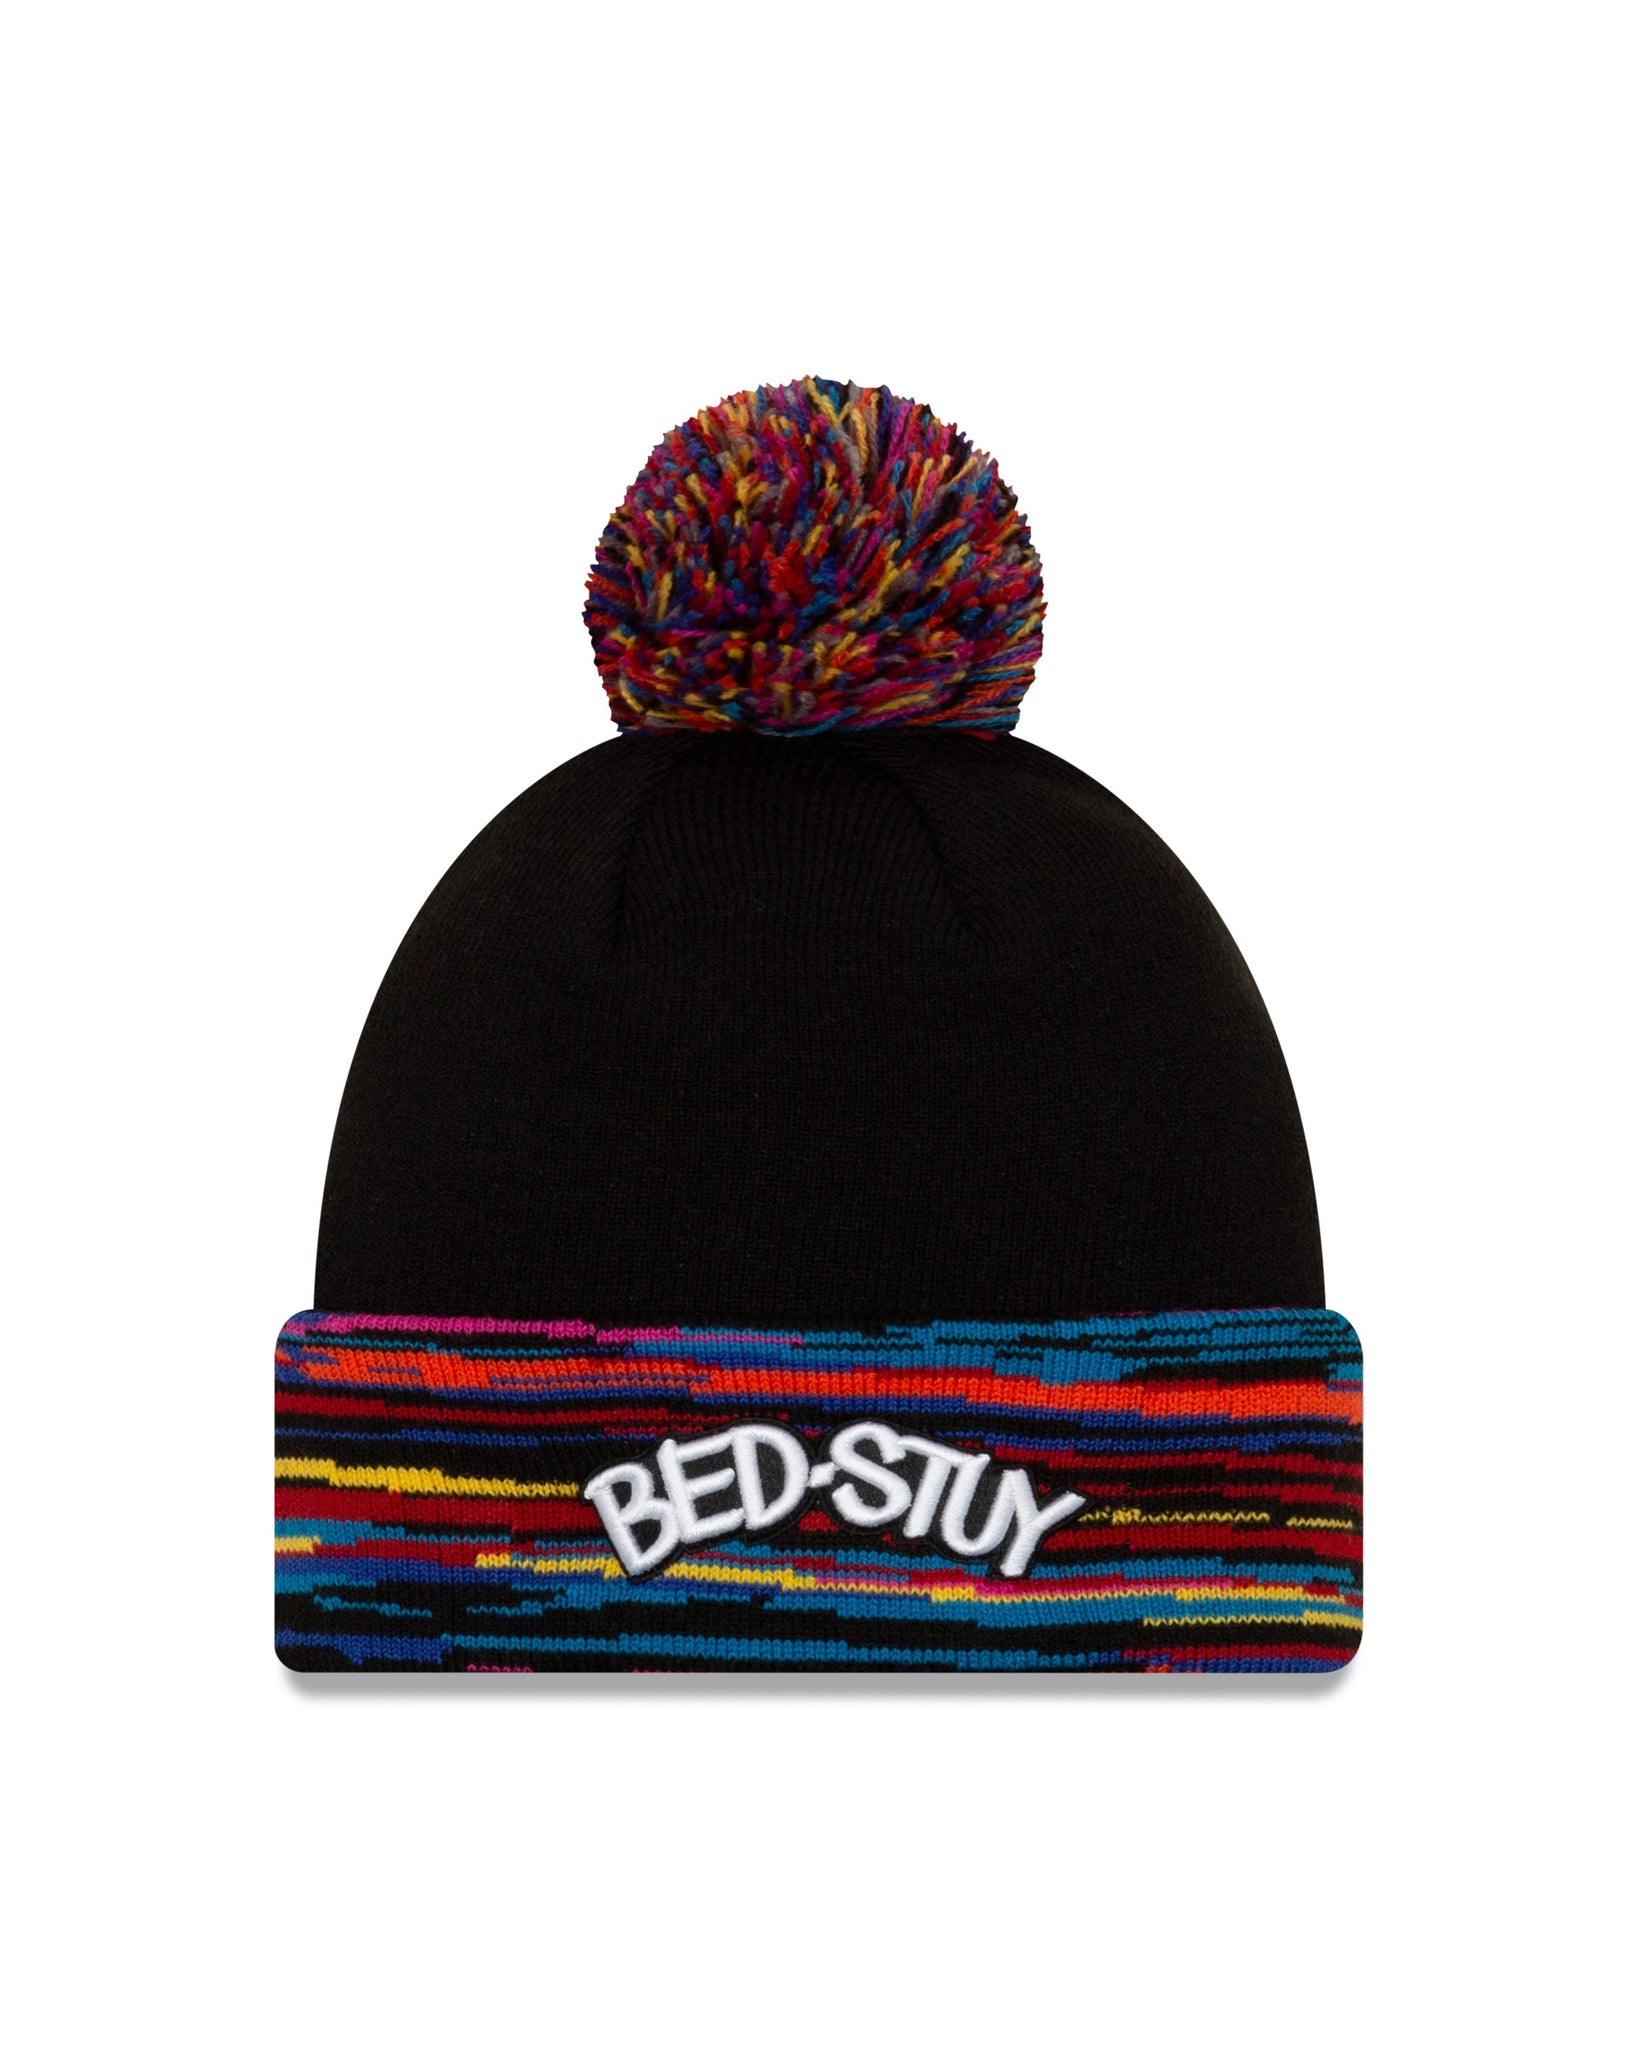 City Edition Bed Stuy Cuffed Knit w/ Pom